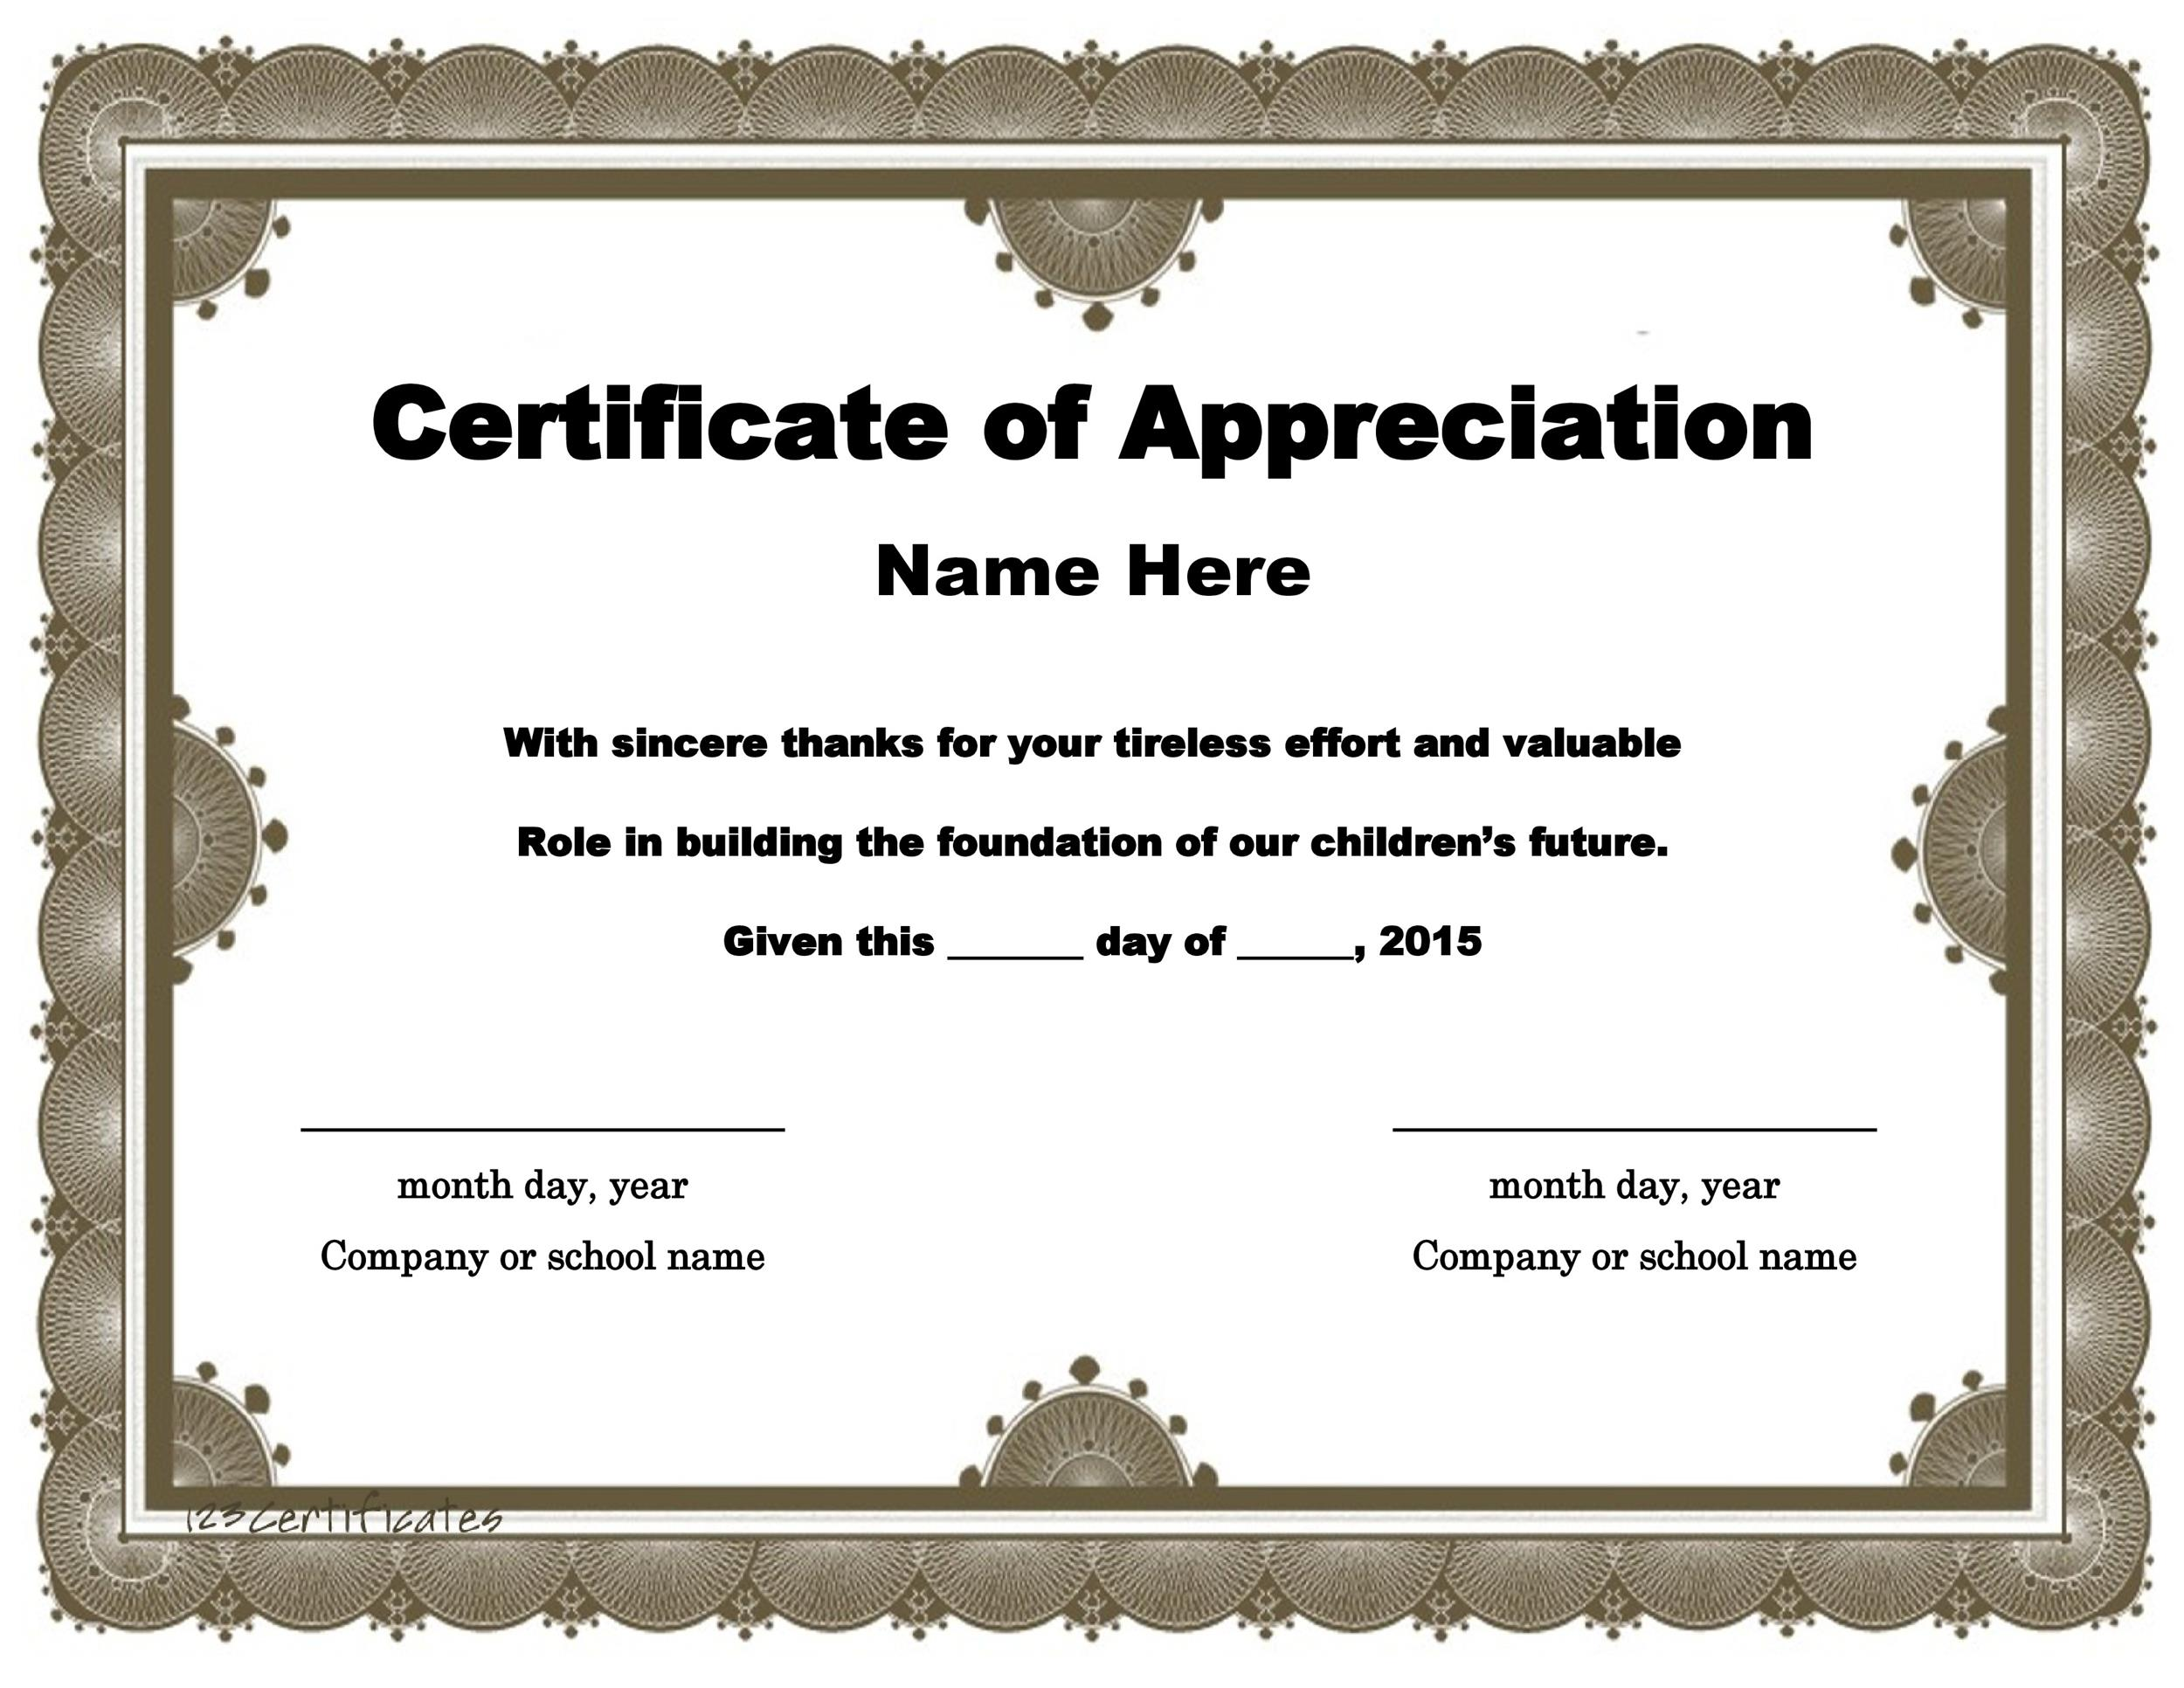 30 free certificate of appreciation templates and letters printable certificate of appreciation 03 yelopaper Gallery